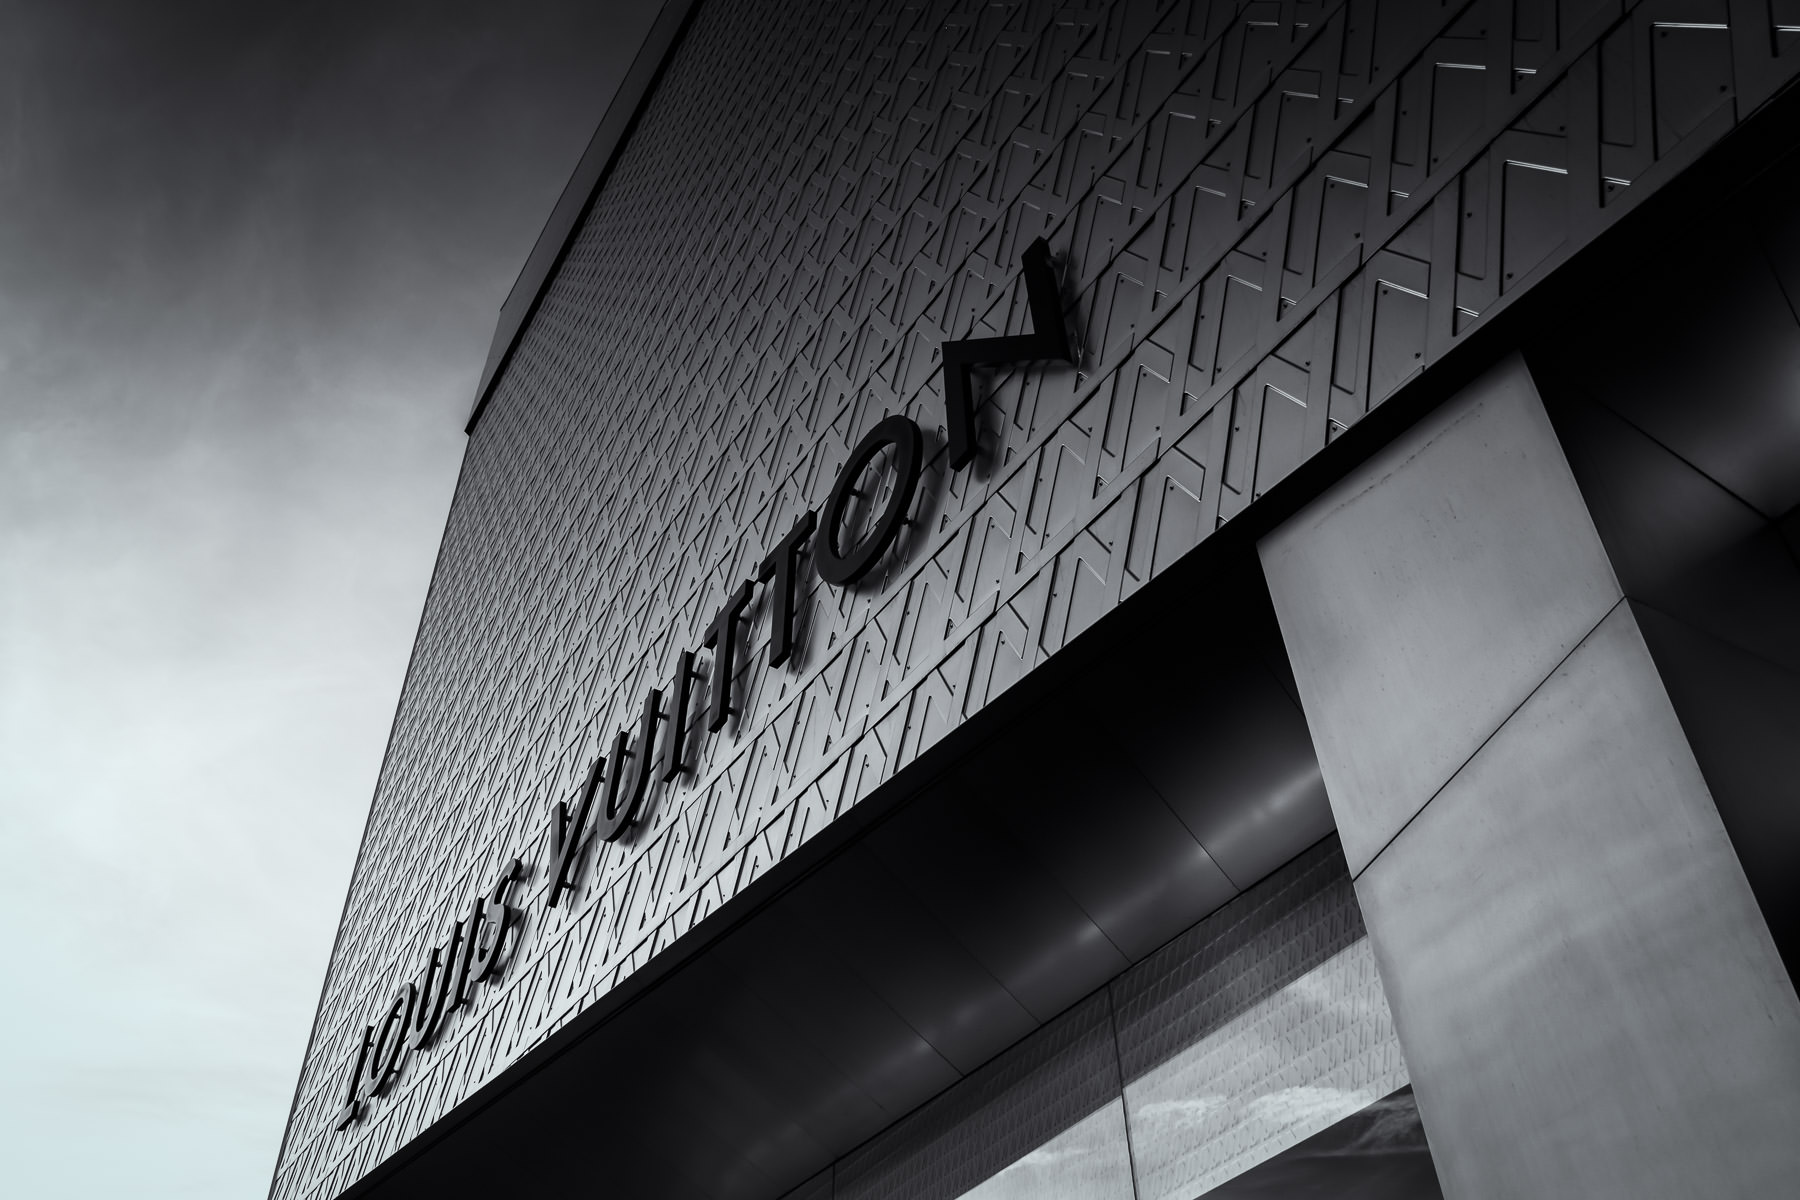 Architectural detail of the Louis Vuitton boutique at The Crystals, CityCenter, Las Vegas.